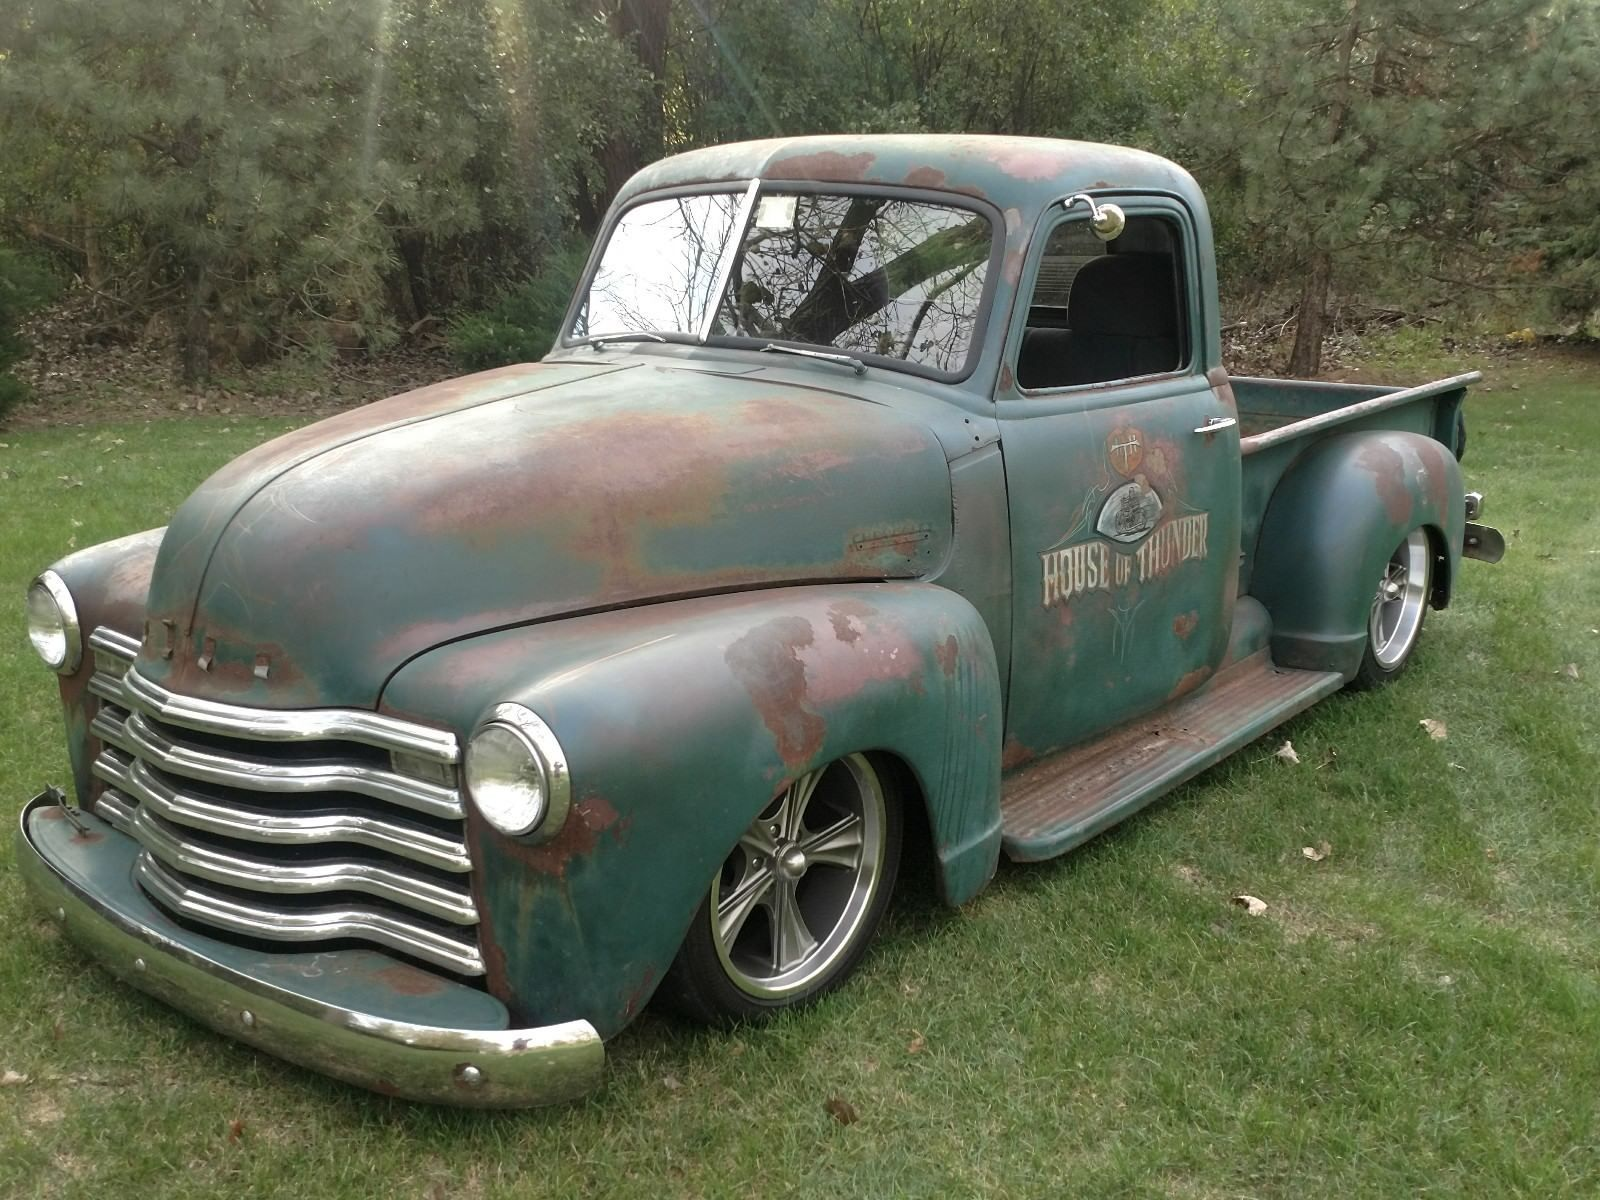 Pin by BobElaine Sharp on Old Trucks and tractors | Pinterest ...